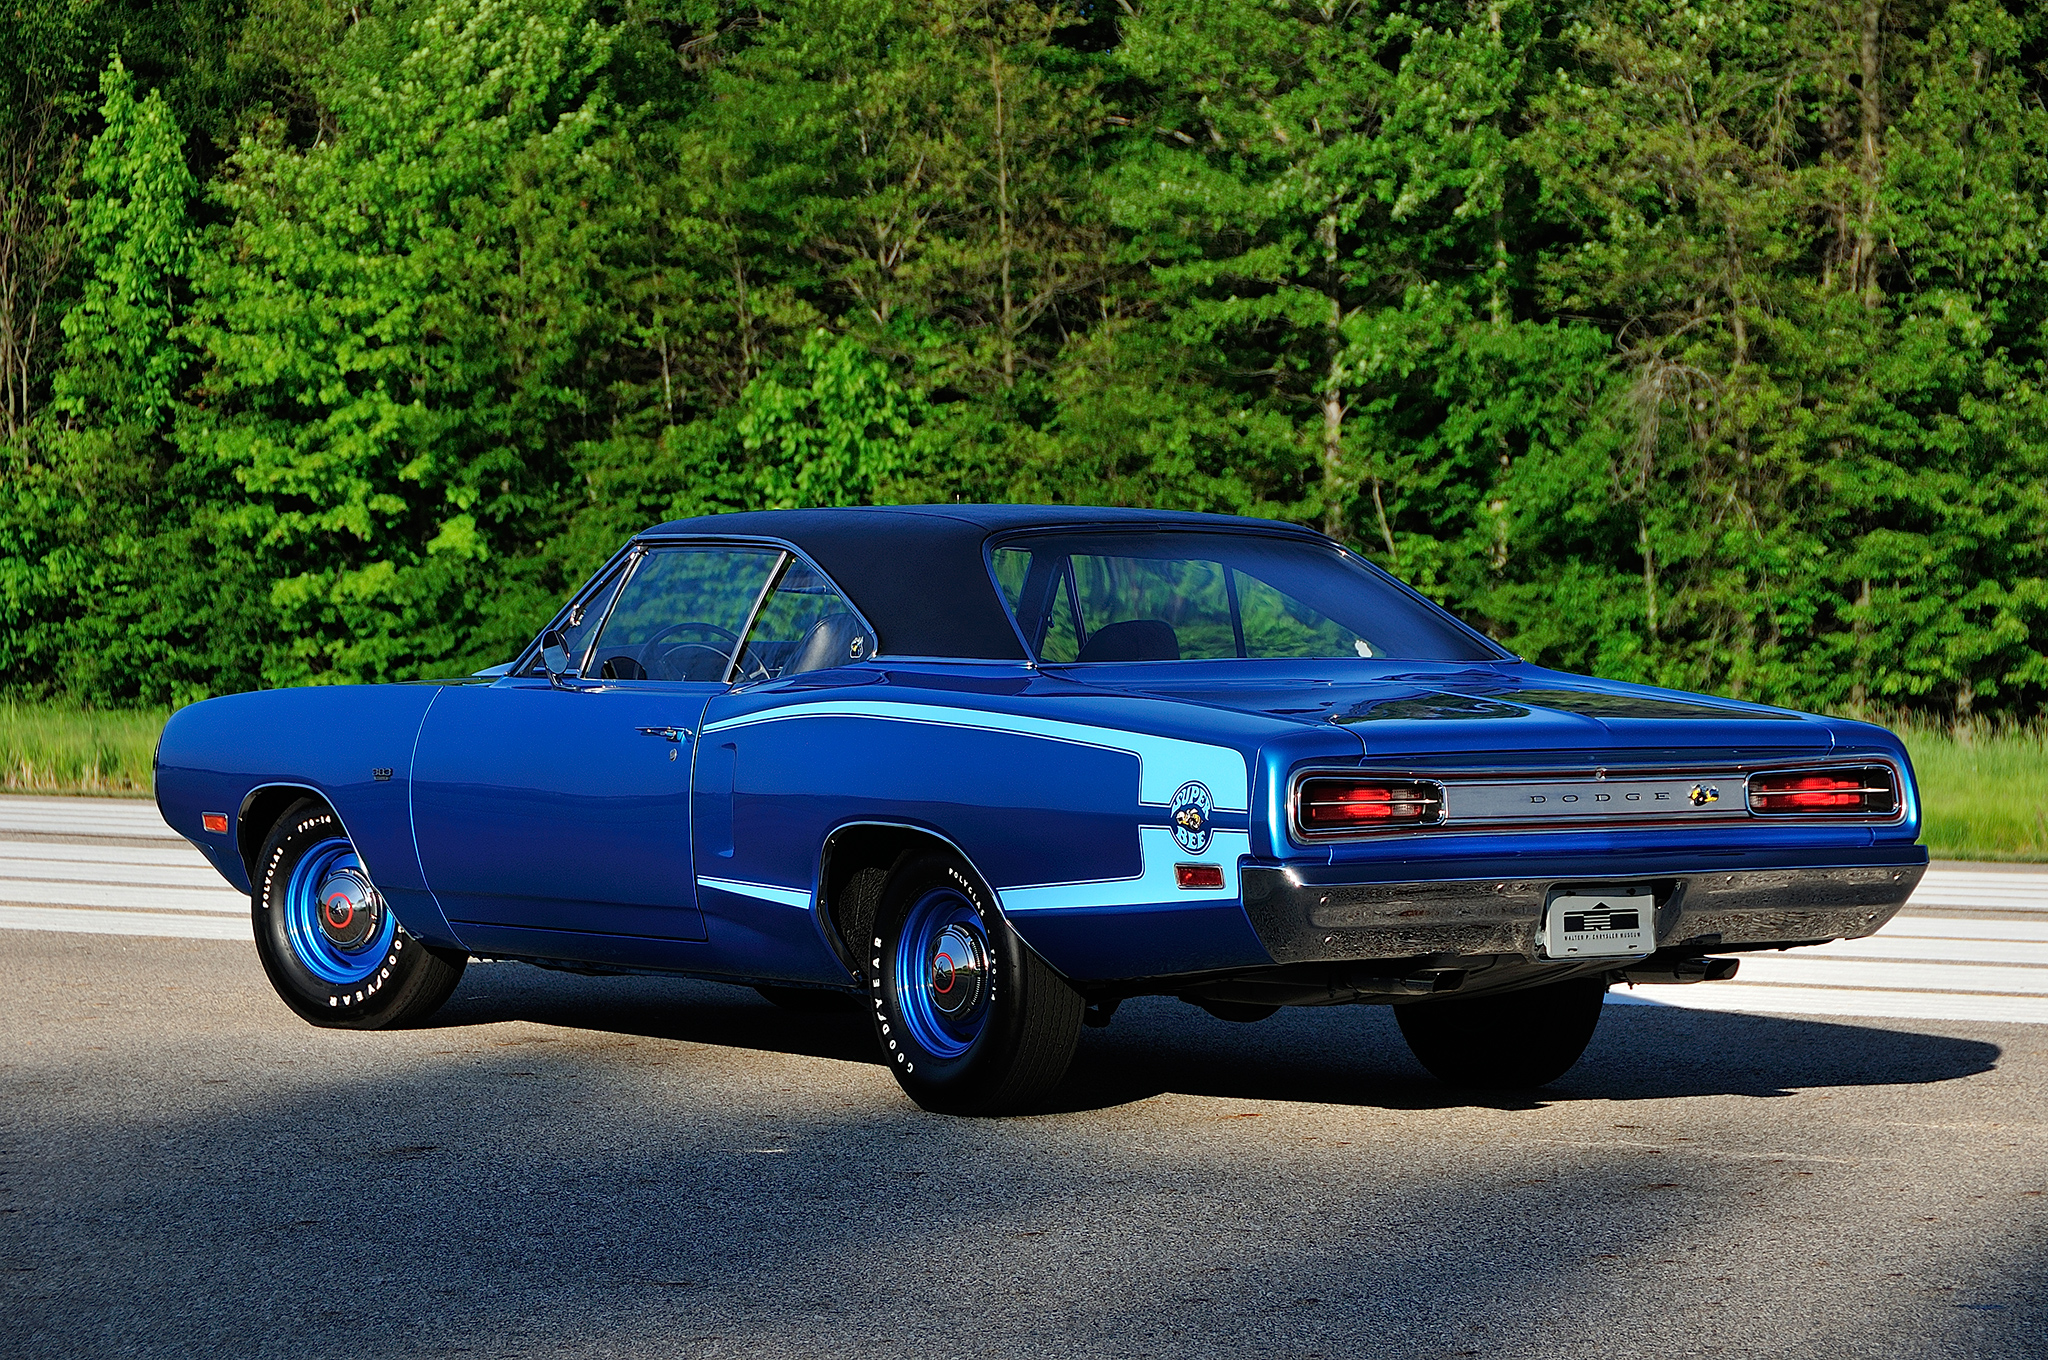 400-Mile 1970 Dodge Super Bee Was a Teaching Aid for 30 Years - Hot Rod  Network